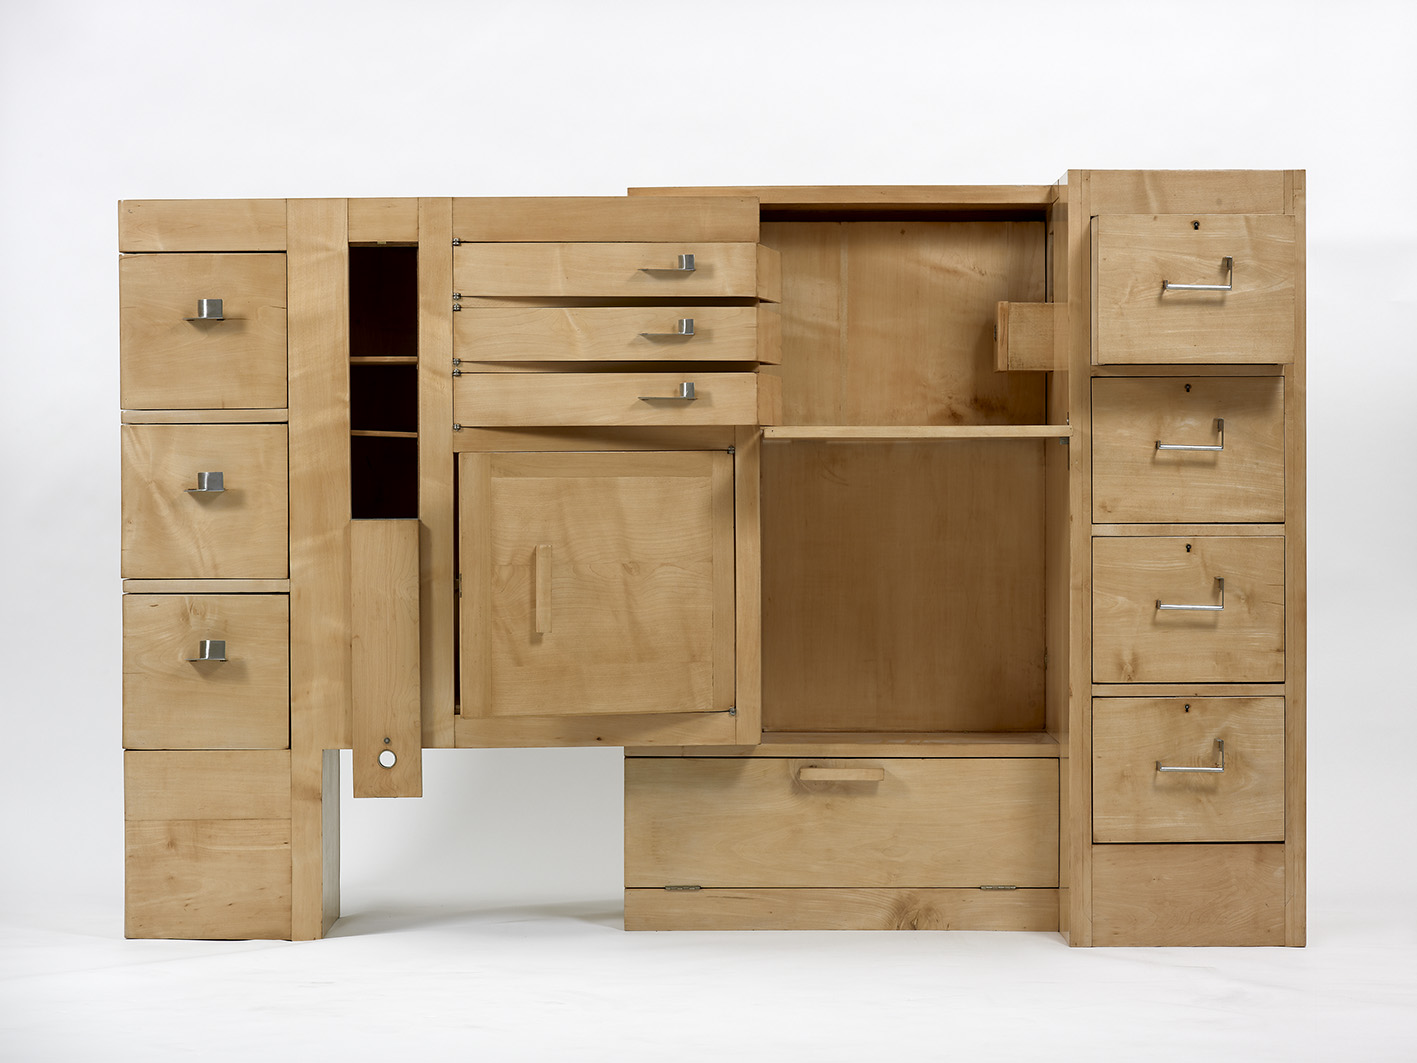 Architectural Cabinet. © Private collection.